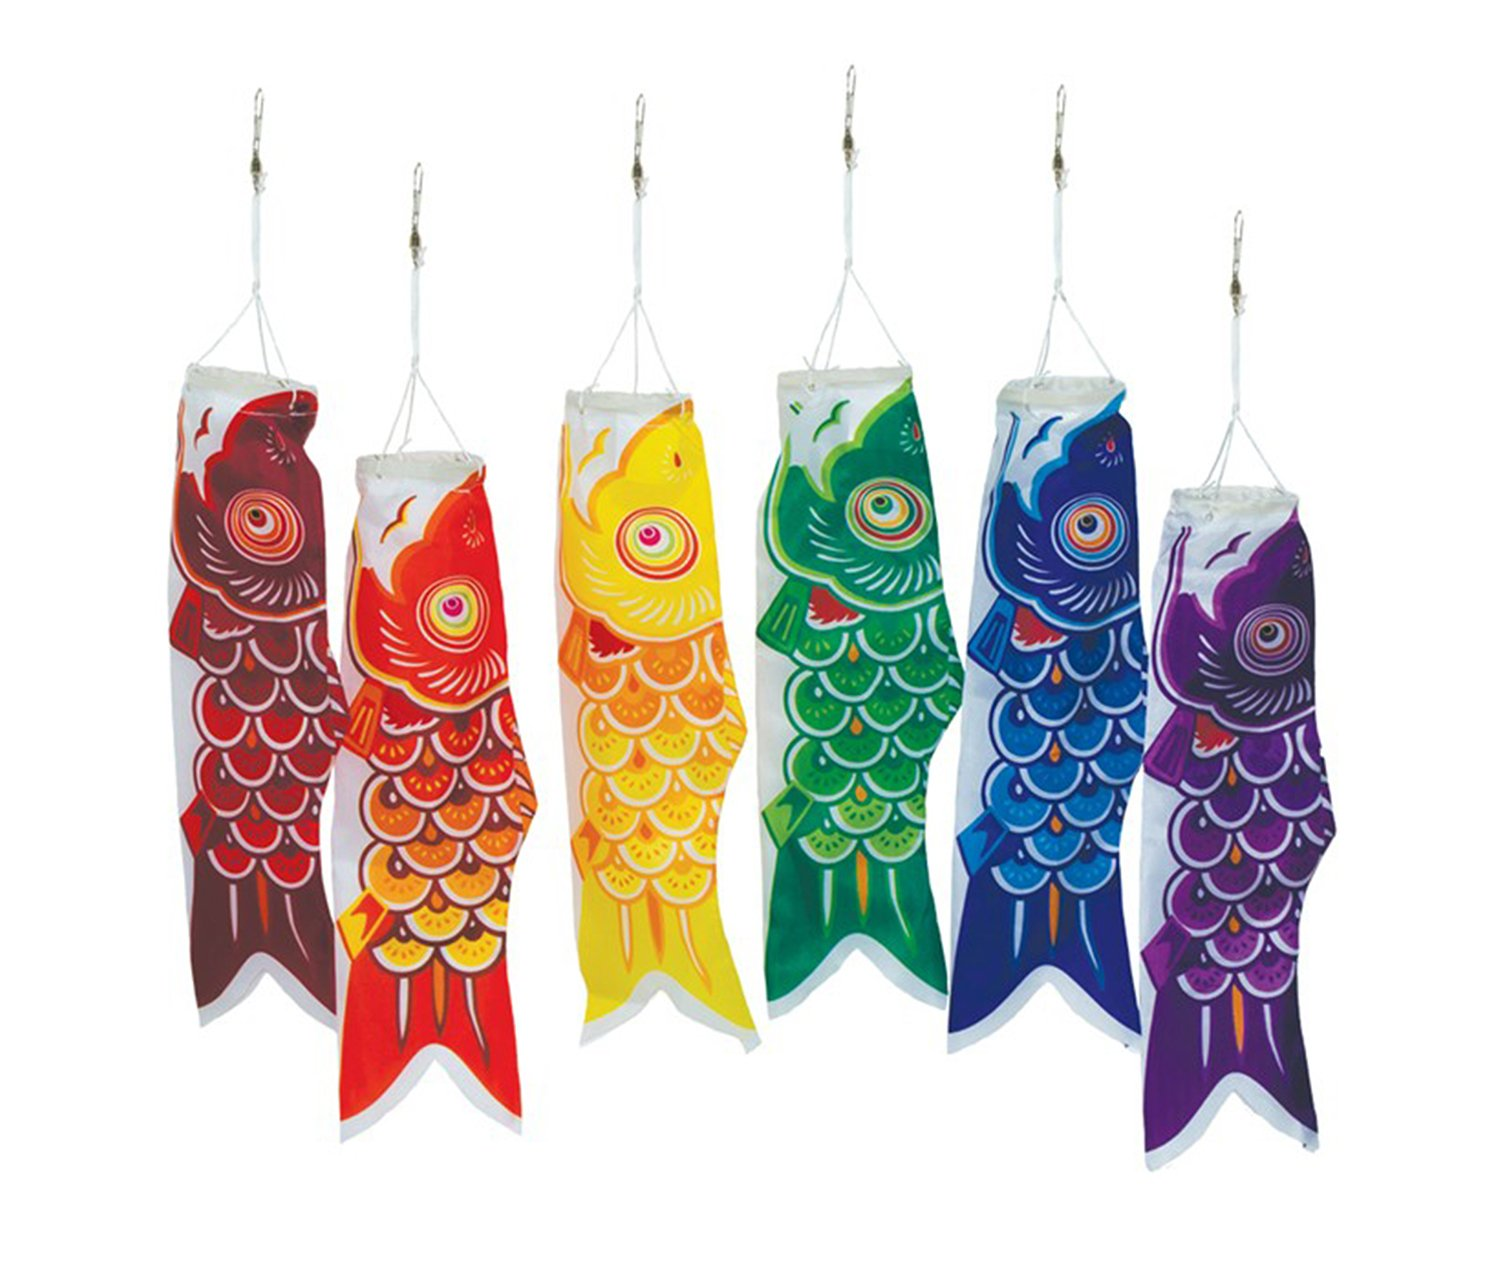 Mozlly Multipack - In the Breeze 12 inch Colorful Koi Fish Windsocks - Hanging Novelty Patio Decor (6pc Set) (Pack of 6) - Item #S115072_X6